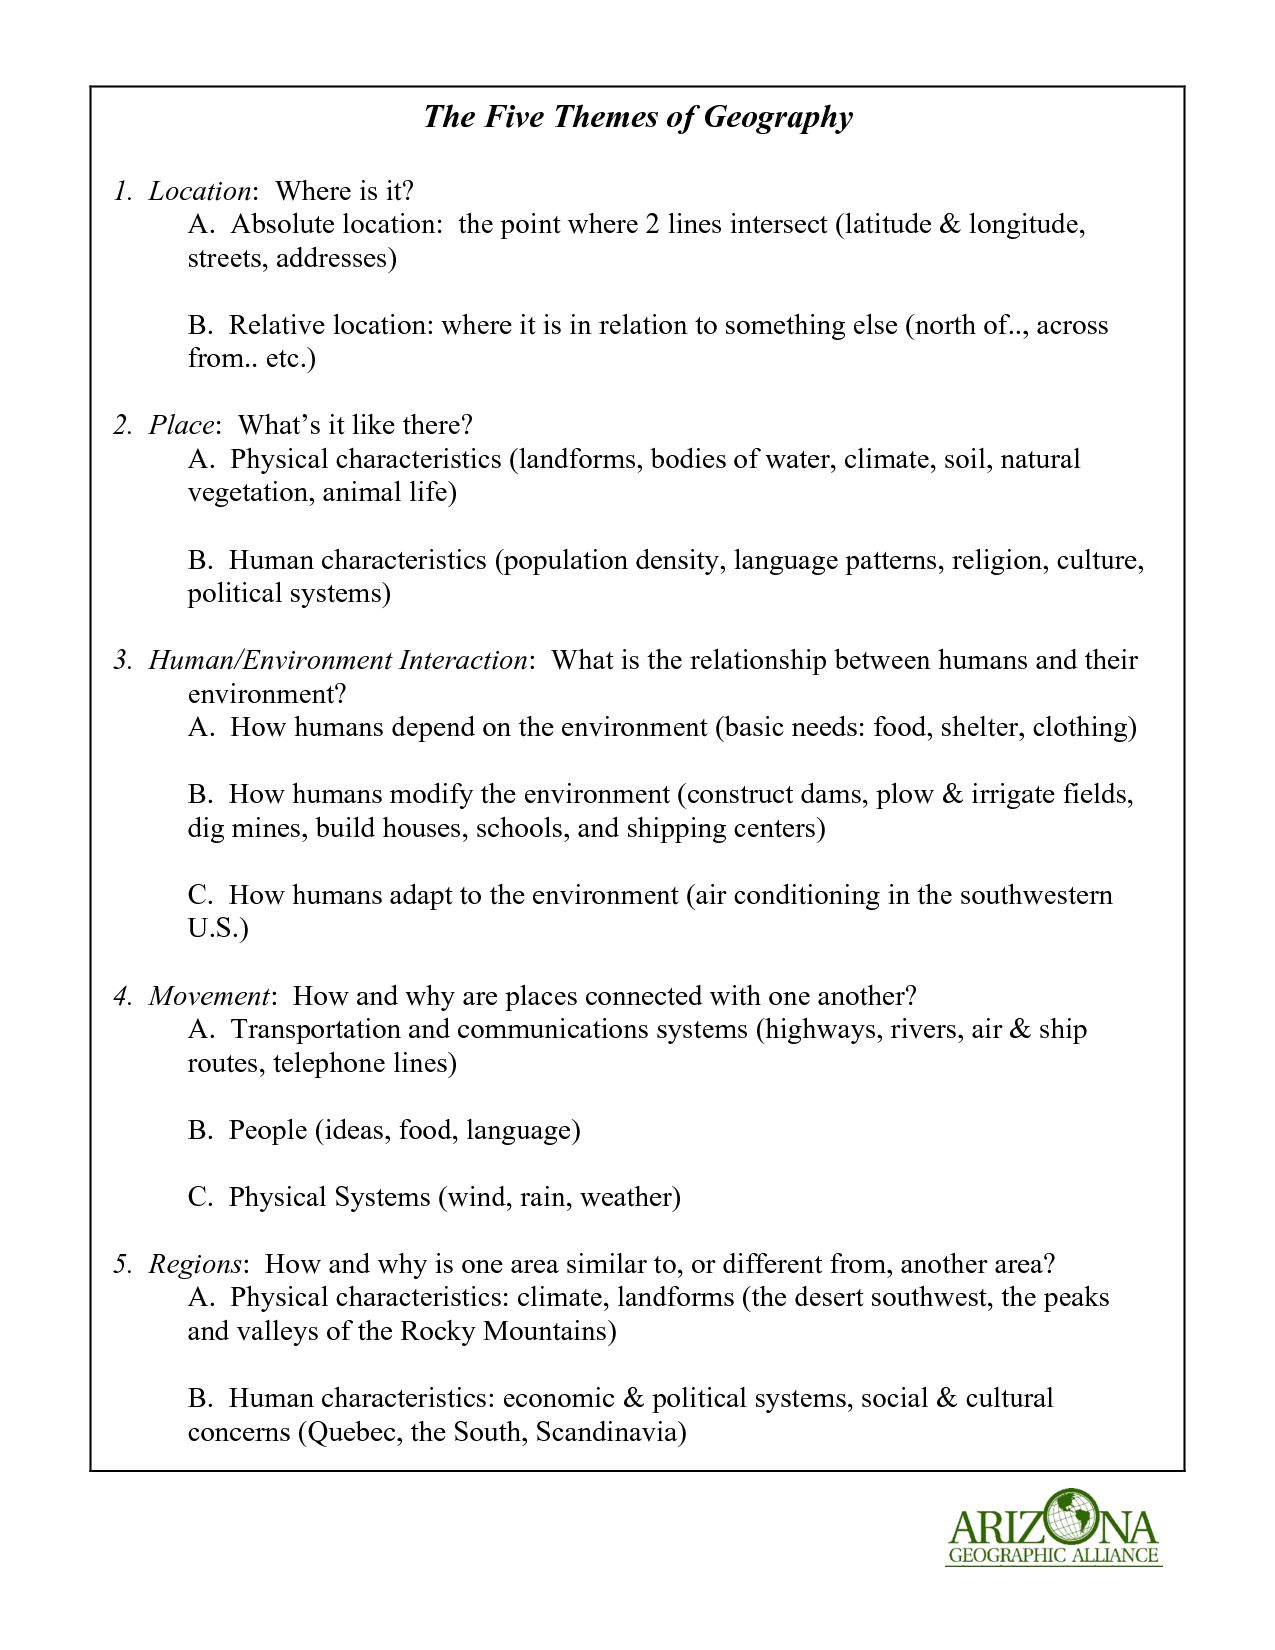 Worksheets 5 Themes Of Geography Worksheet 5 themes of geography printable 18 best images five worksheets